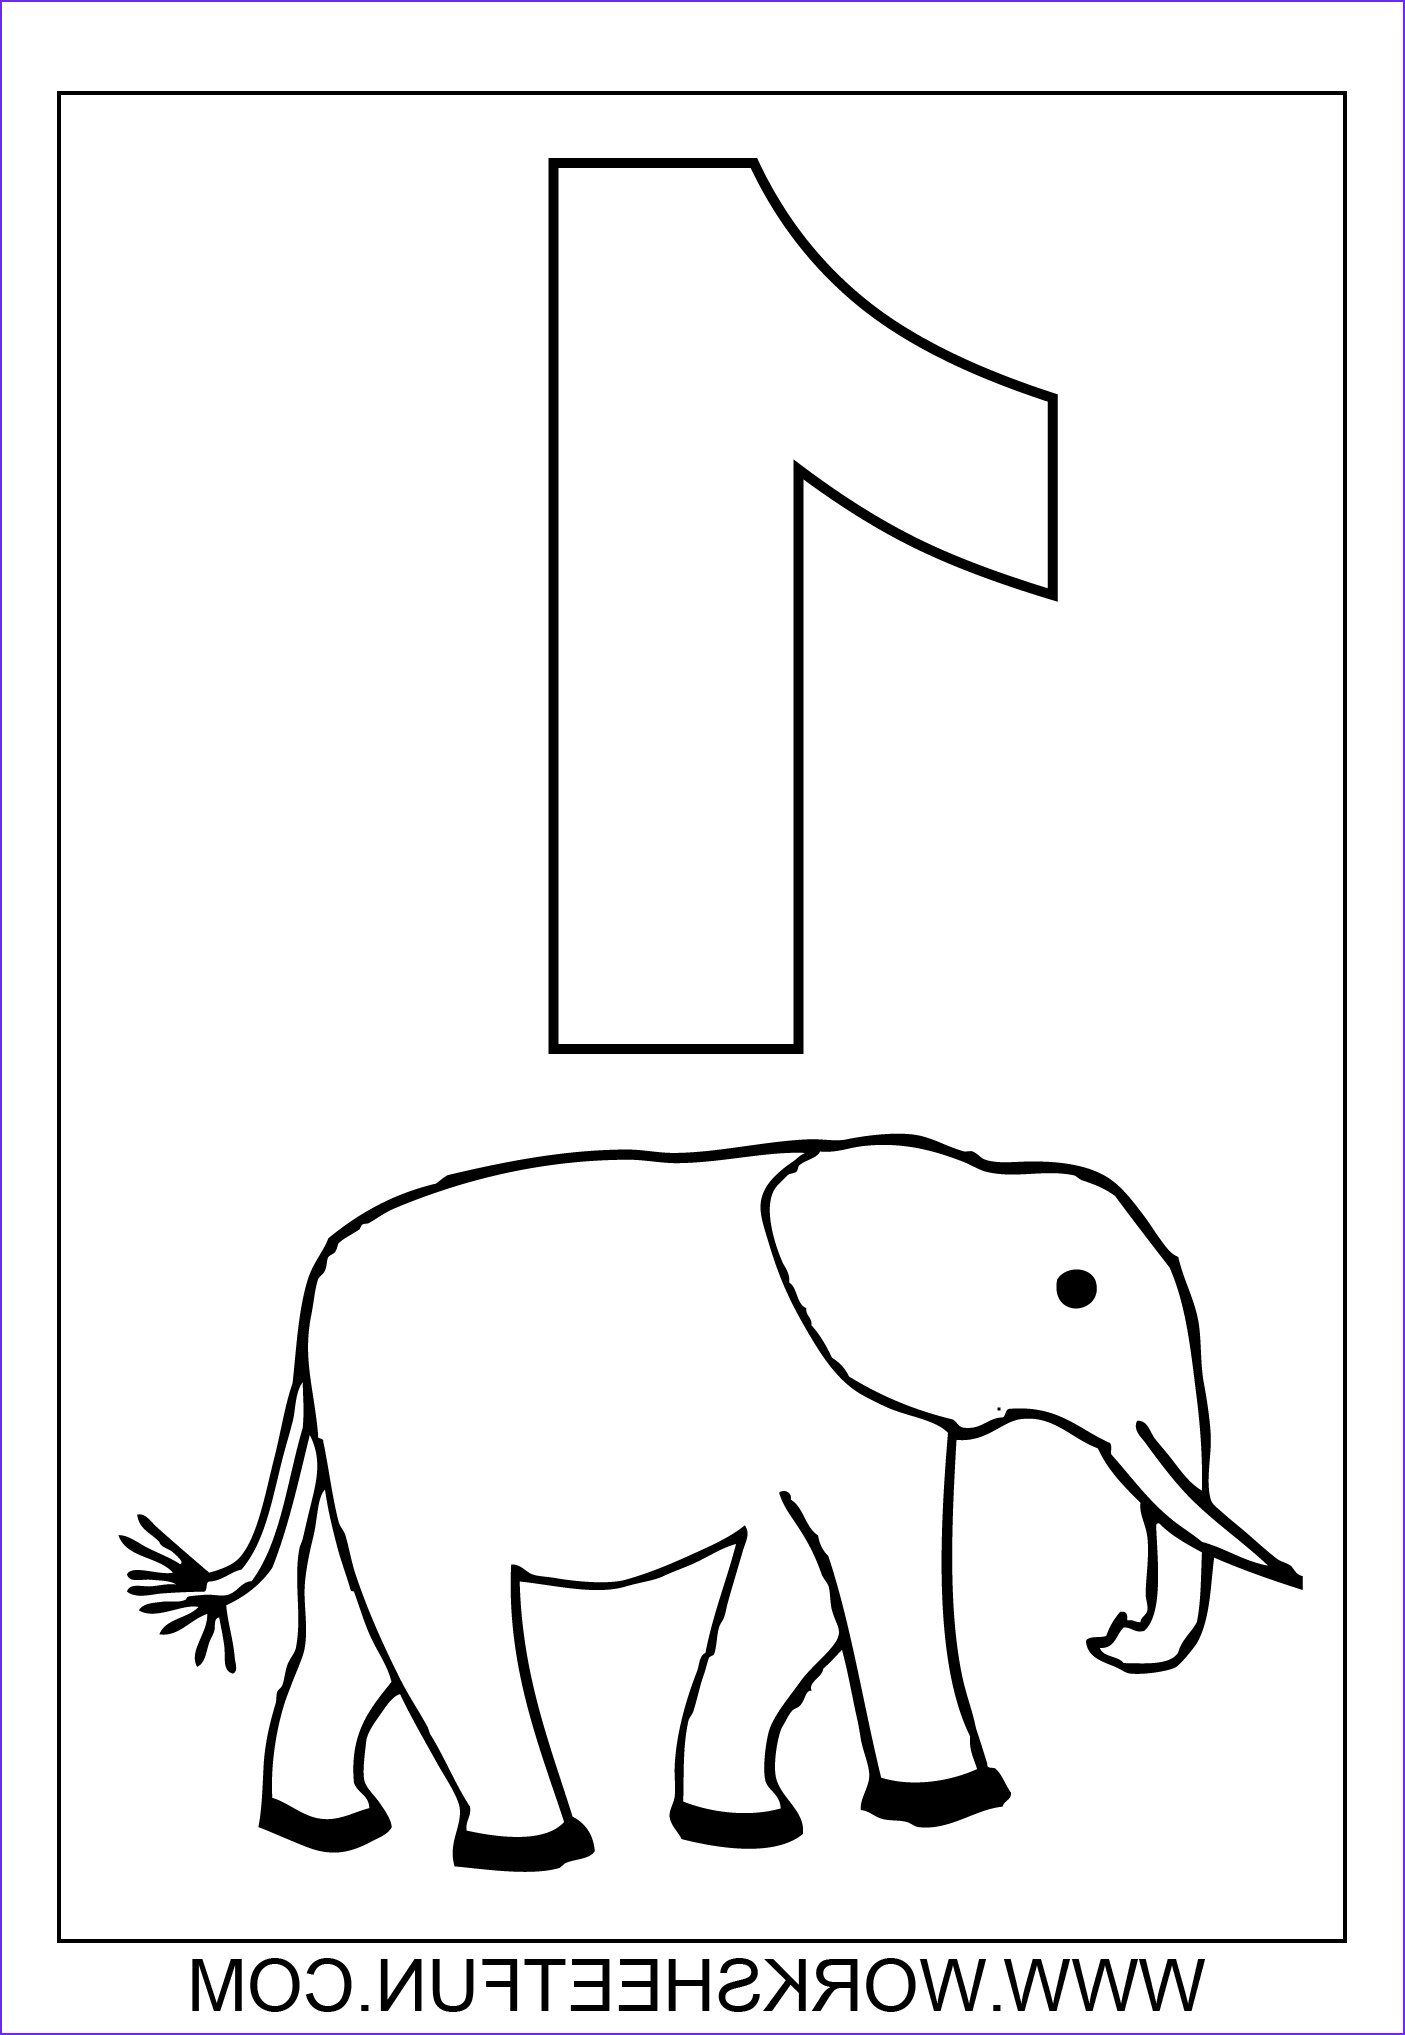 Coloring Worksheet for Preschool Inspirational Photography Number Coloring Pages 1 – 10 Worksheets Free Printable